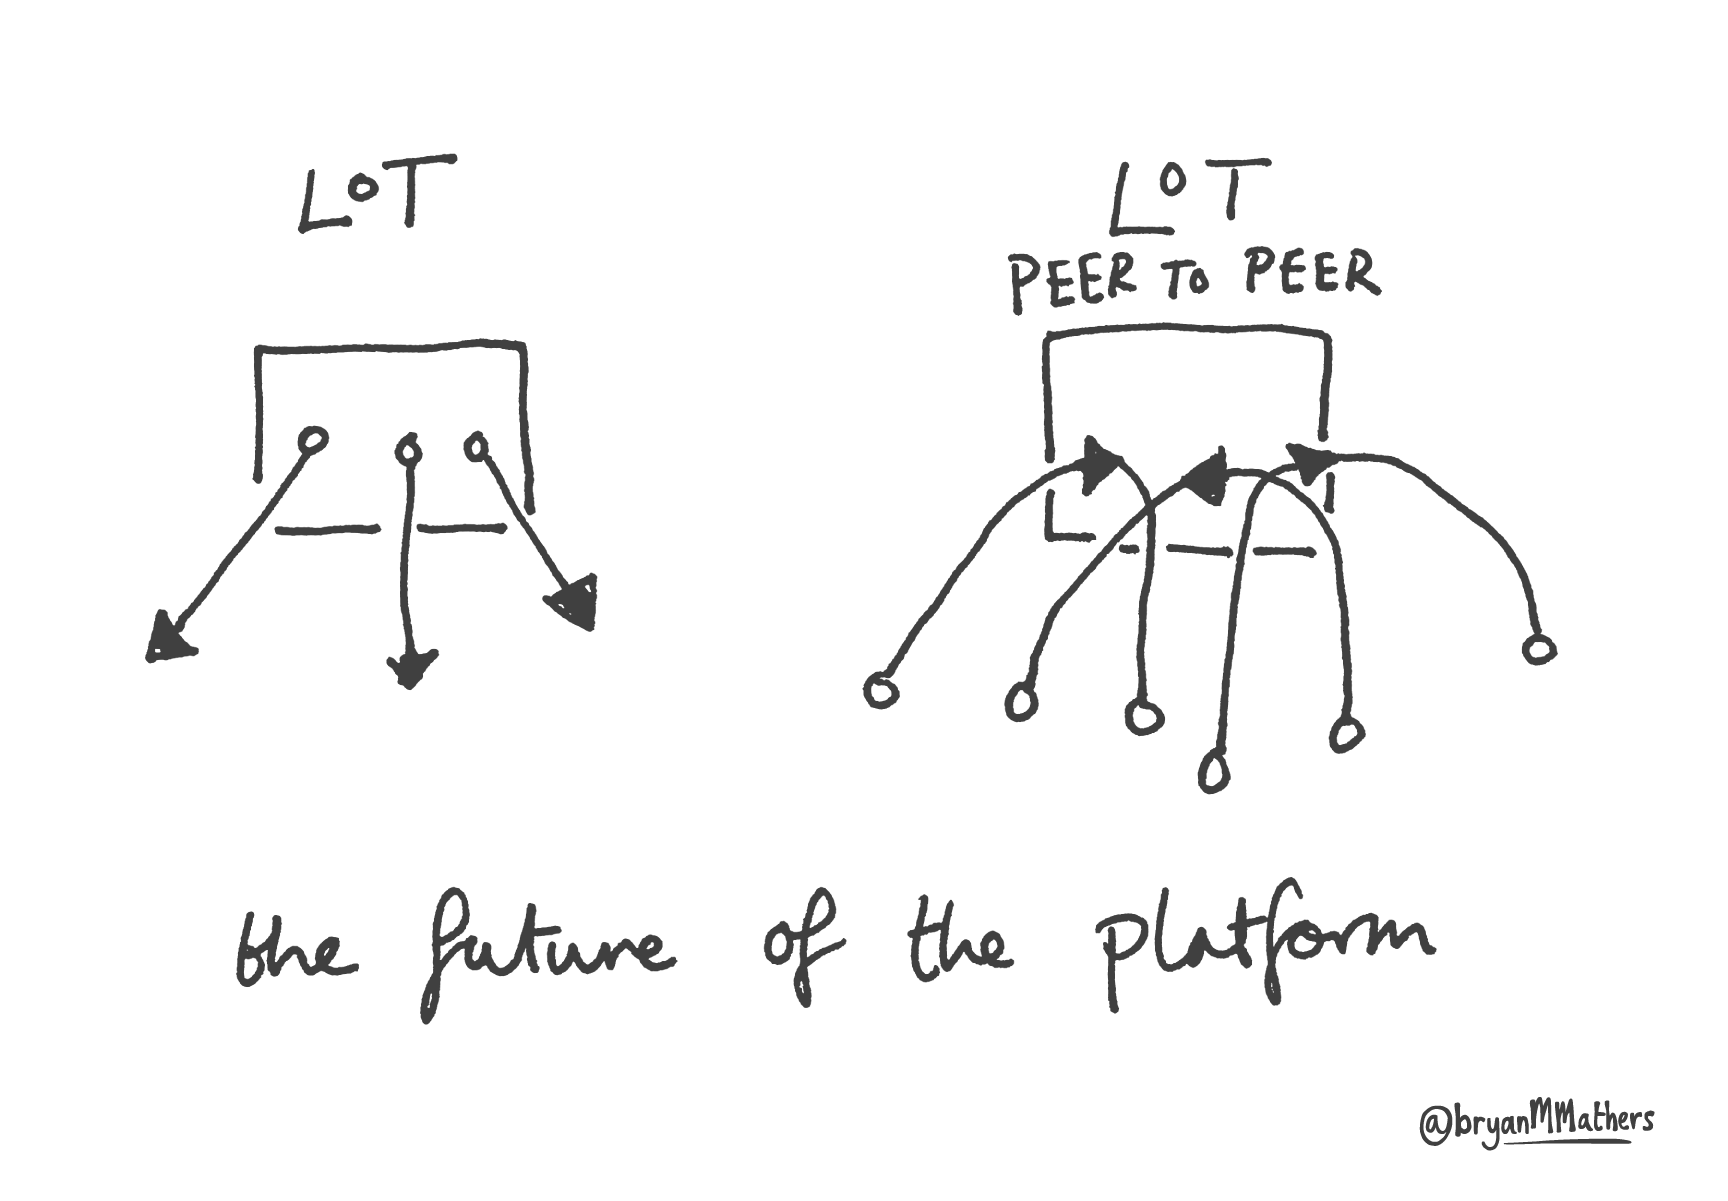 The future of the LoT platform